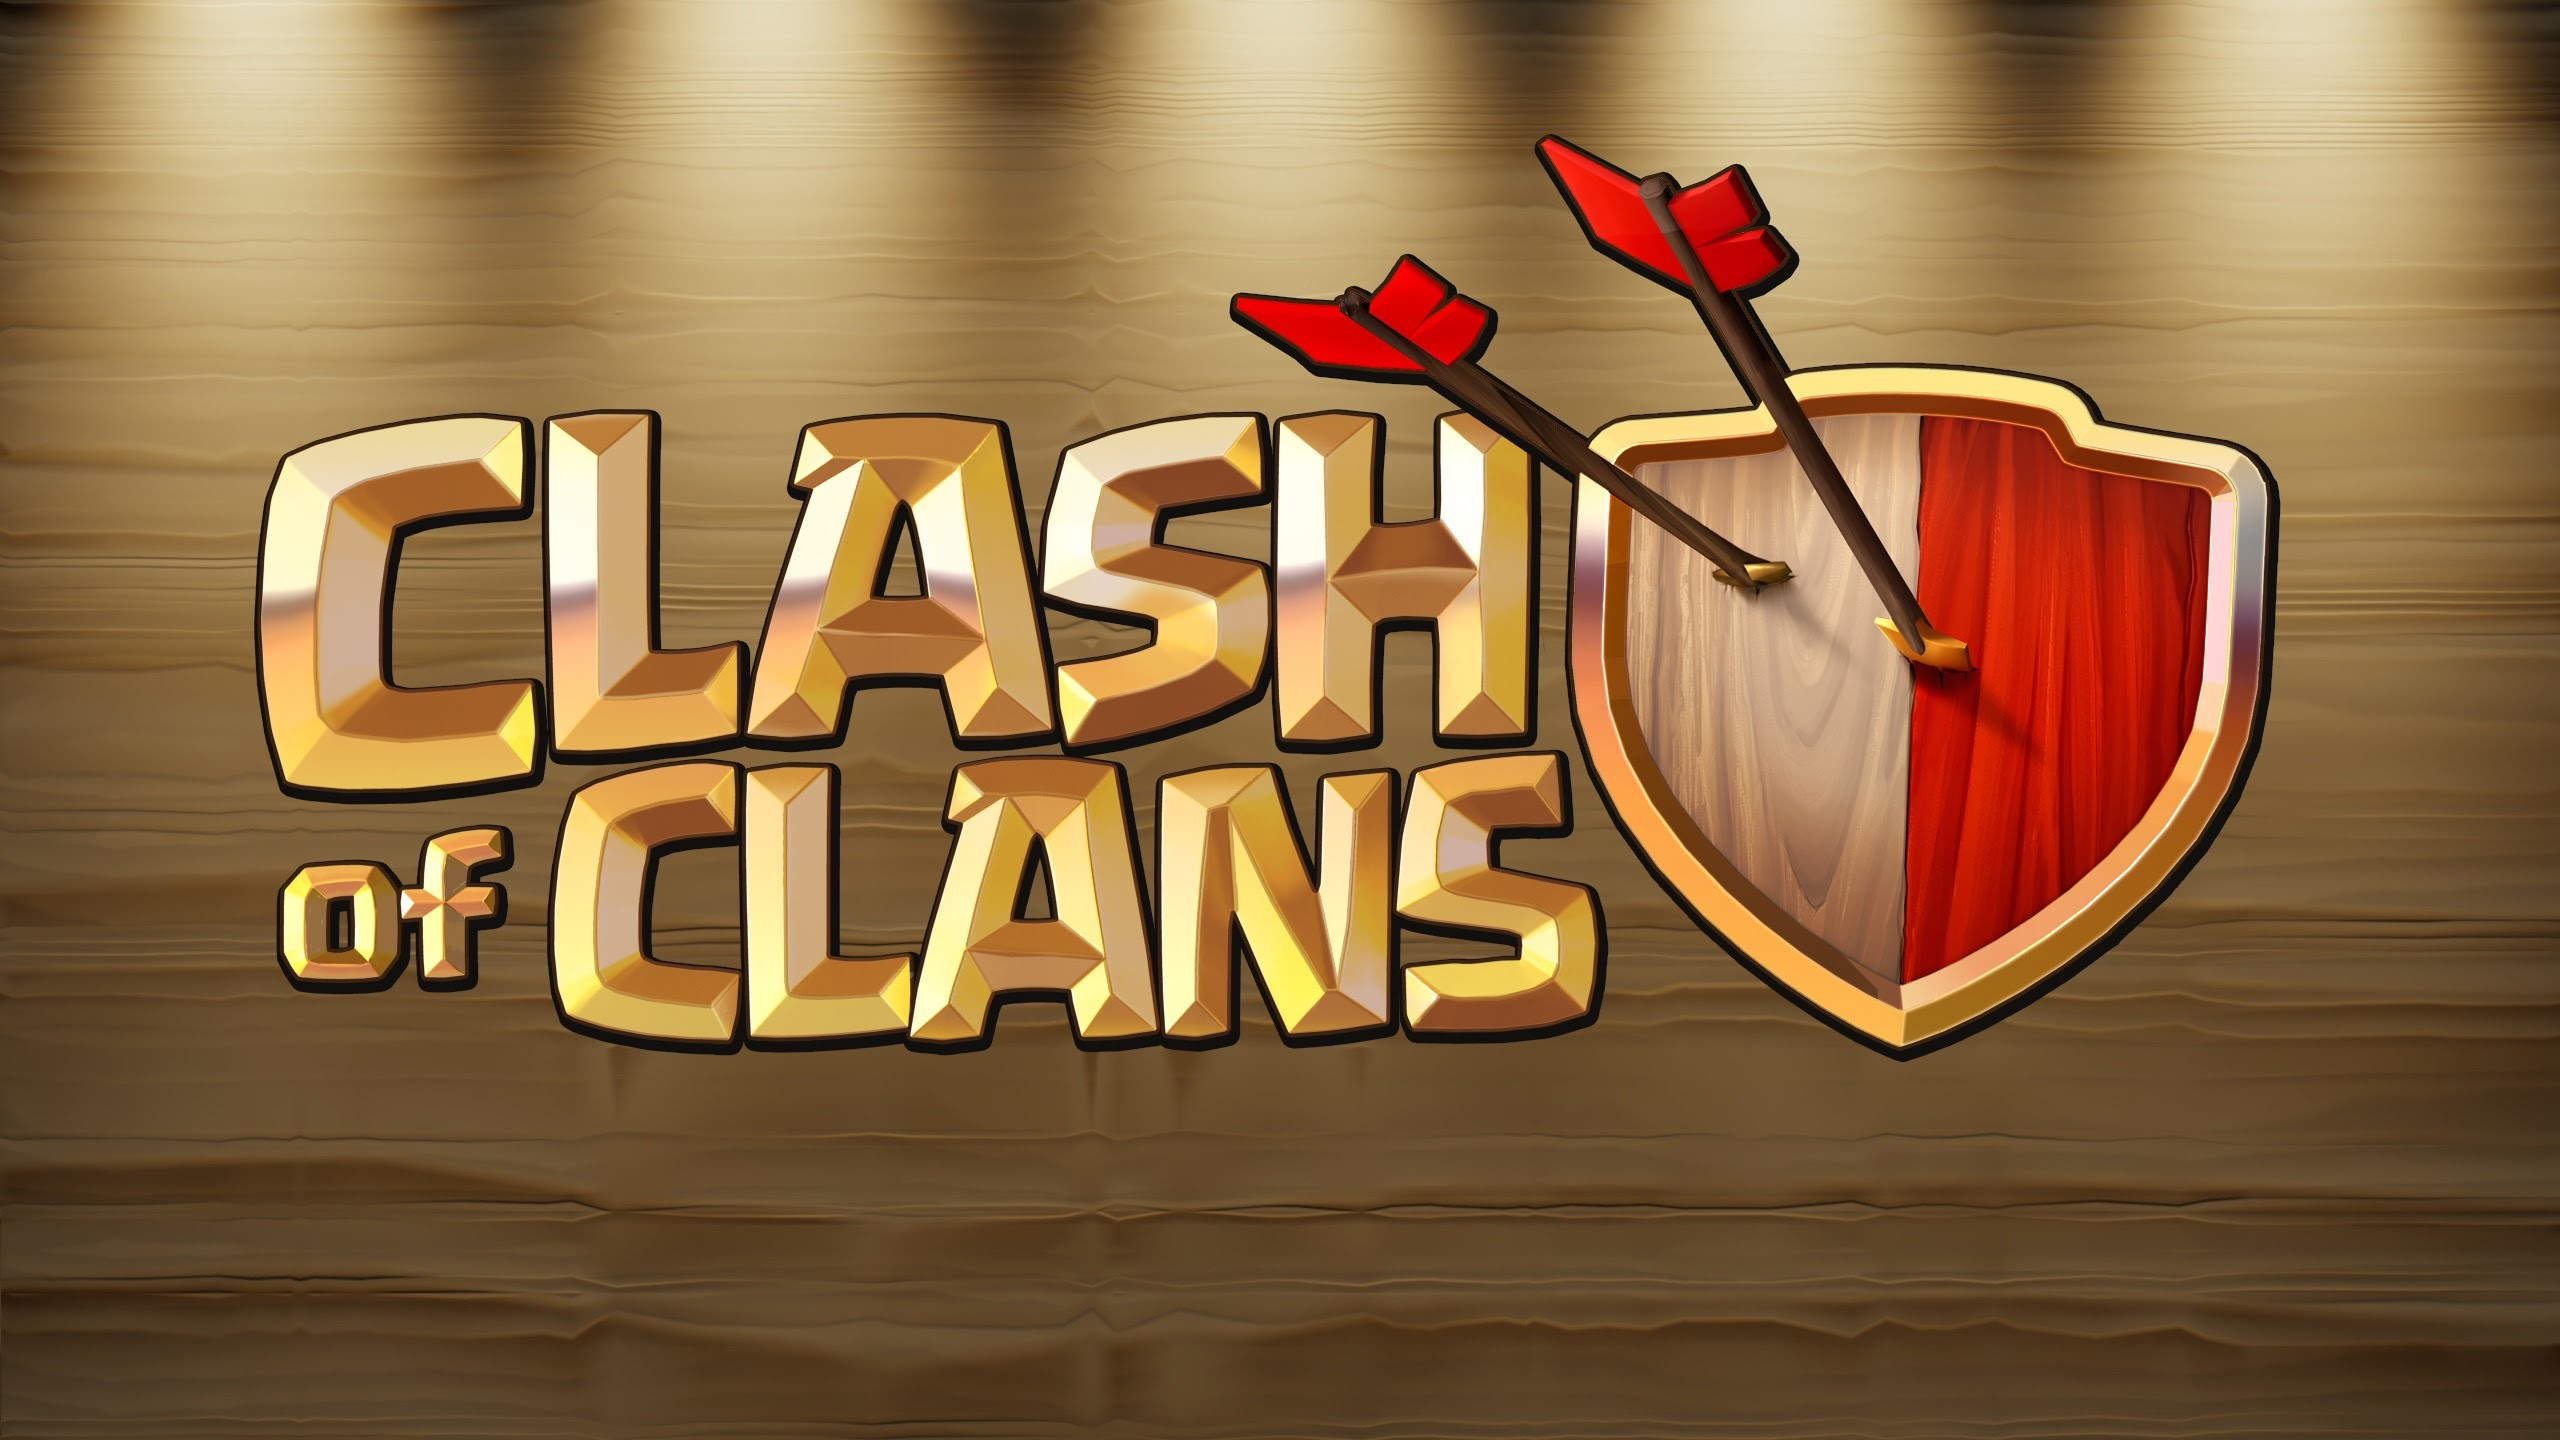 CLASH OF CLAN 2560×1440 Clash Of Clans Images Wallpapers (43 Wallpapers) |  Adorable Wallpapers | backgrounds | Pinterest | Wallpaper